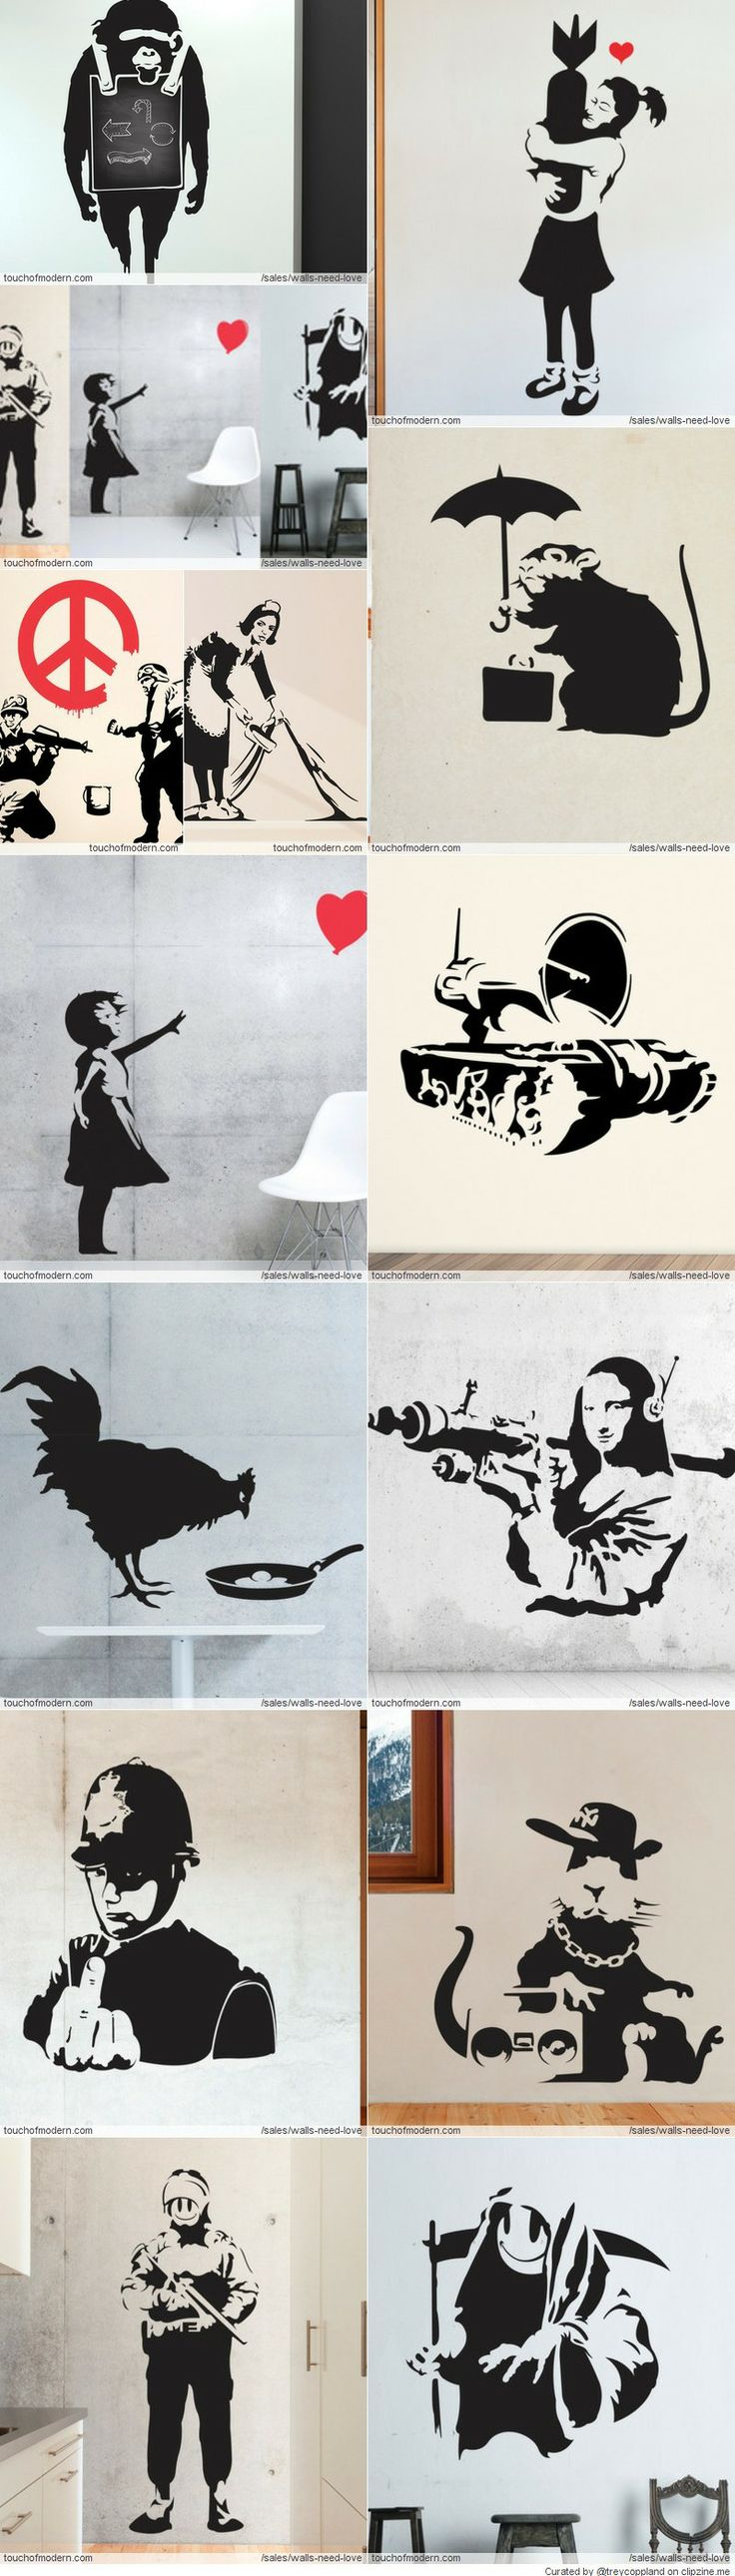 Walls Need Love, Banksy is perfect though....